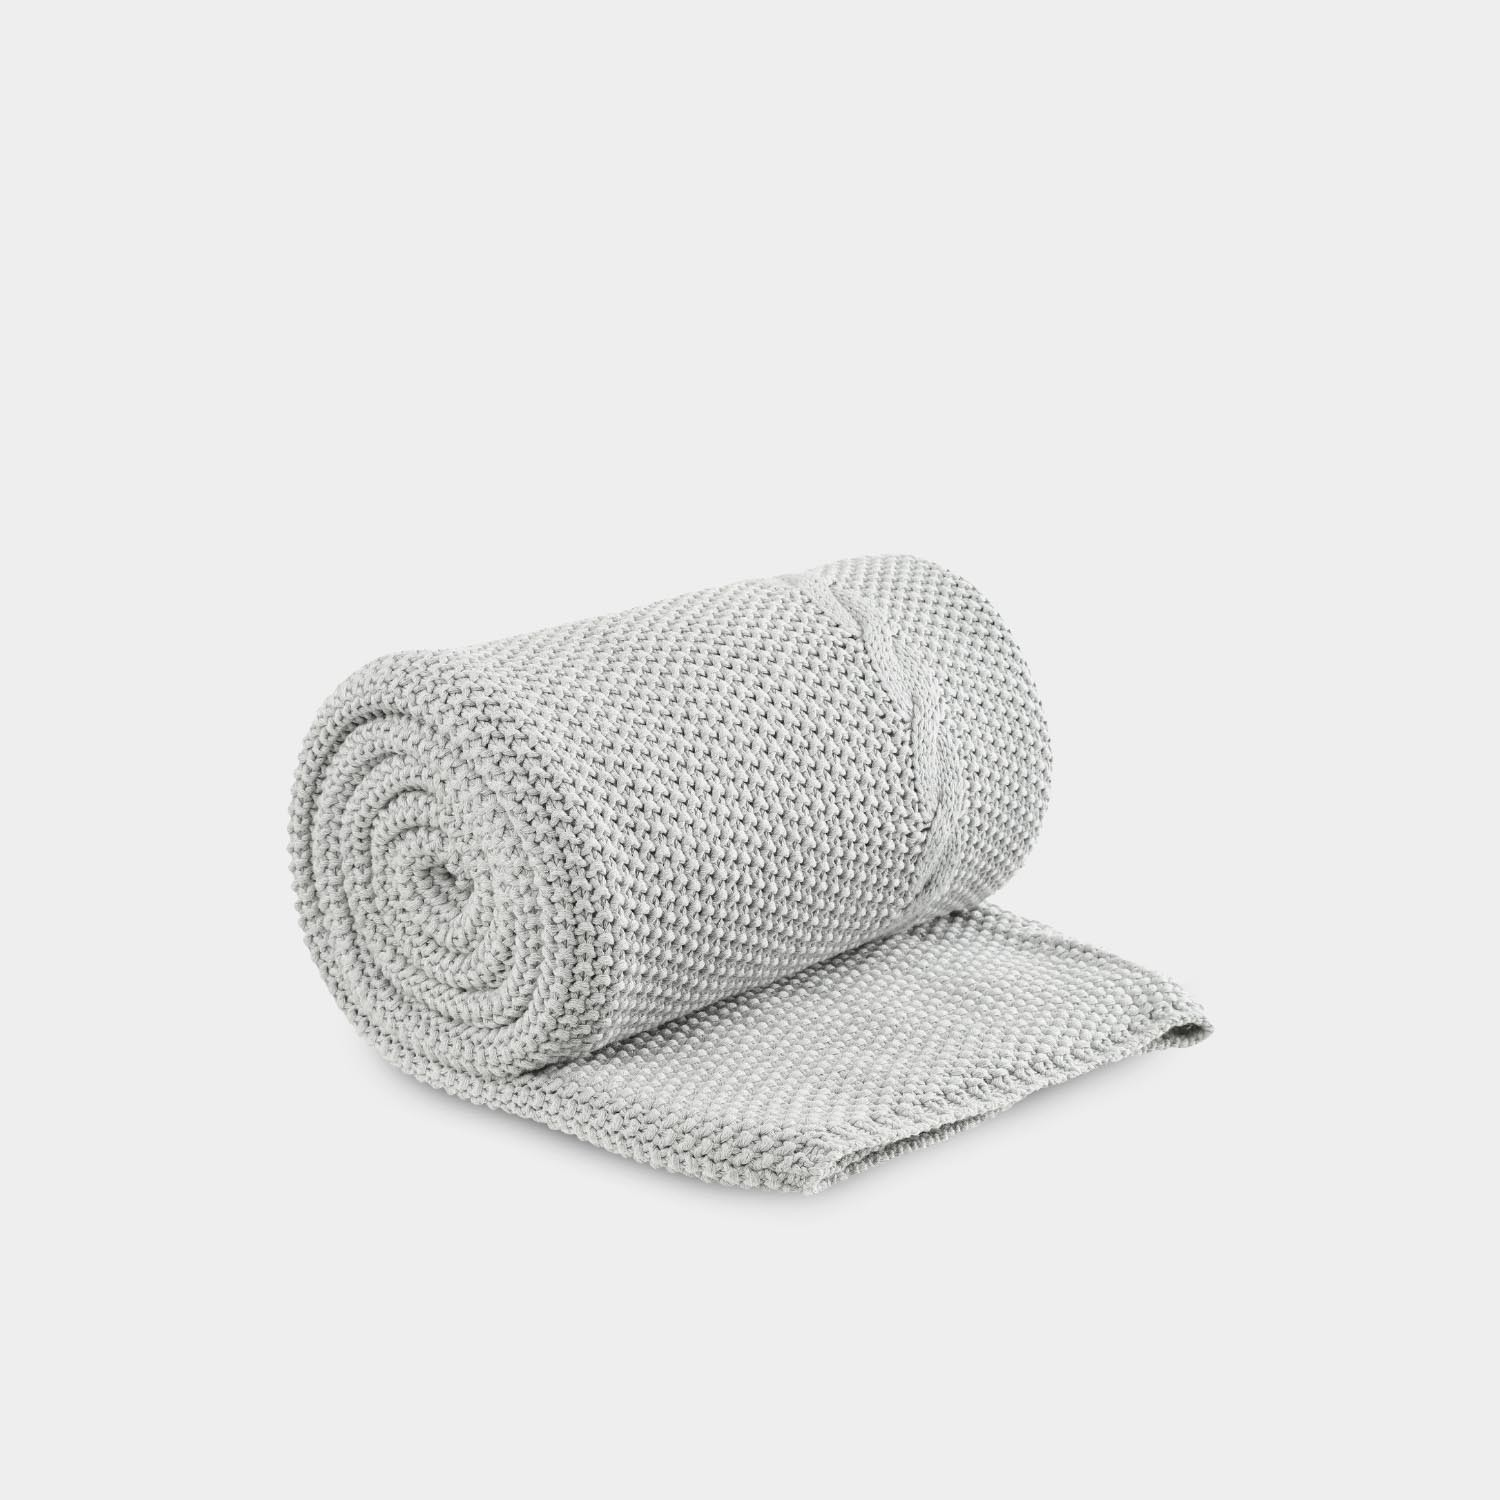 North Cable Throw, Light Gray